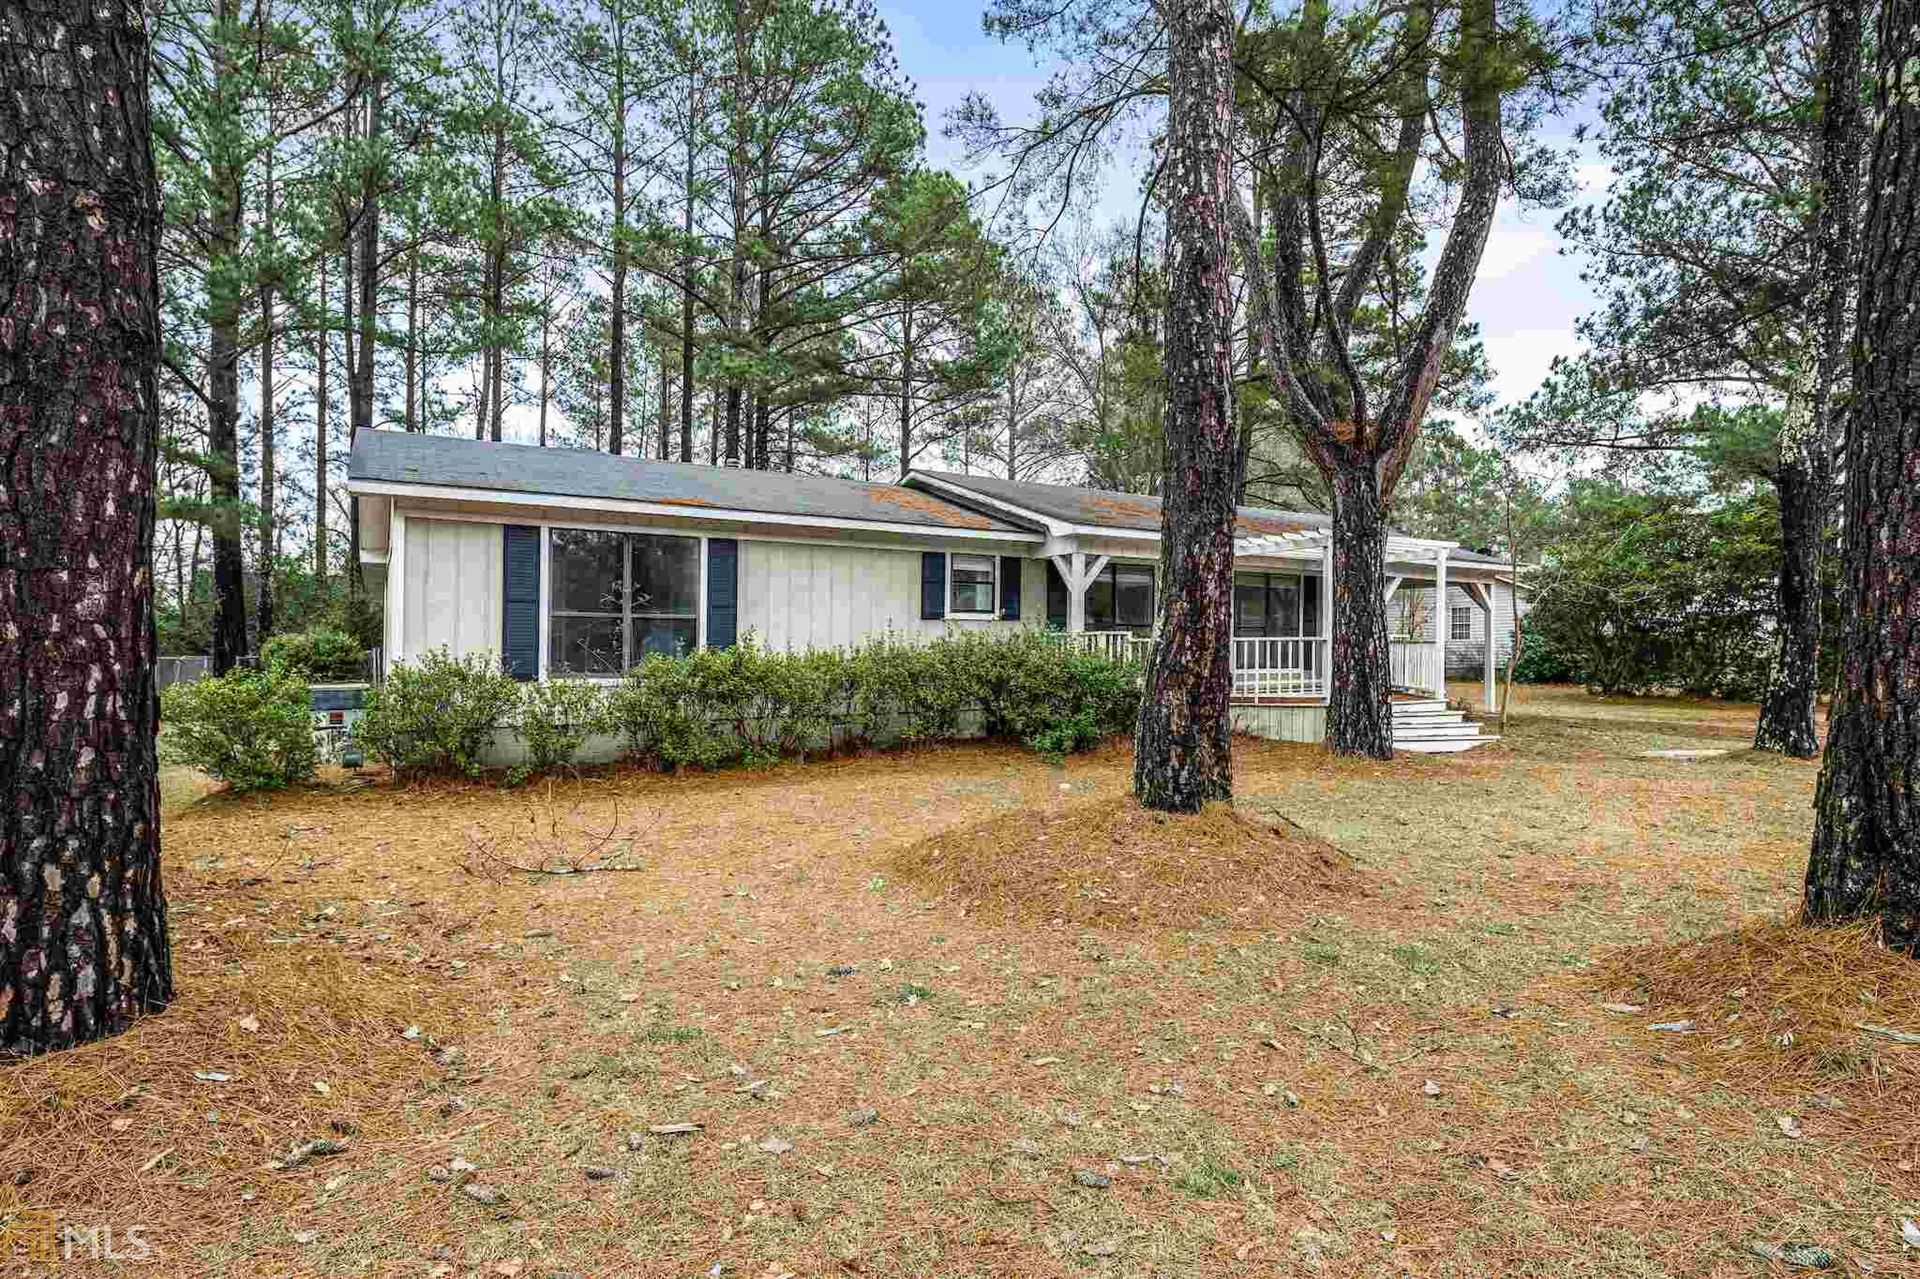 Photo of 619 Harrison St, Sandersville, GA 31082 (MLS # 8856002)